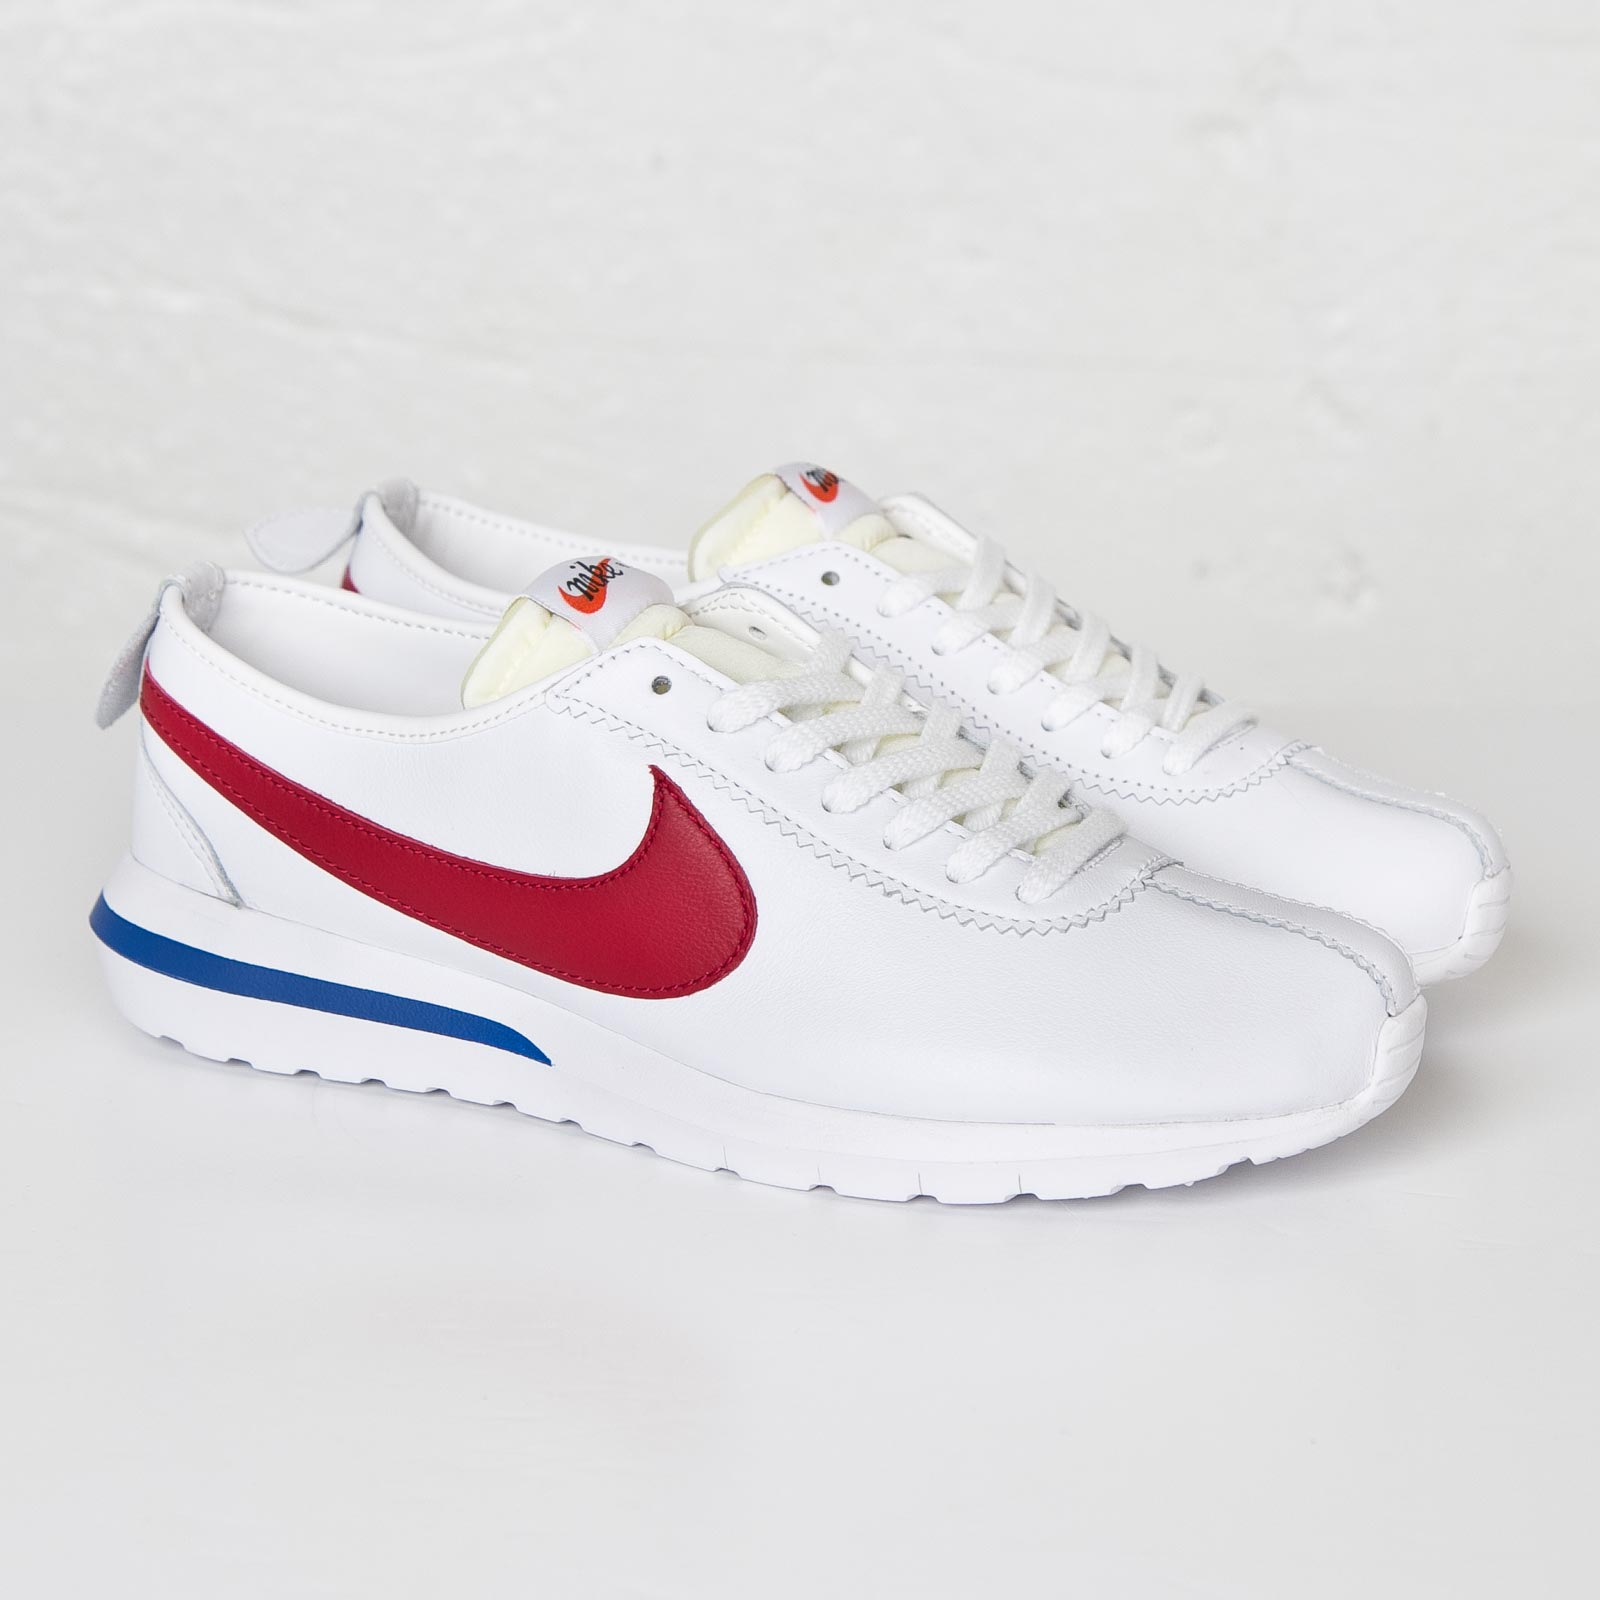 sports shoes b513b a55e1 Nike Roshe Cortez Nm SP - 806952-164 - Sneakersnstuff ...